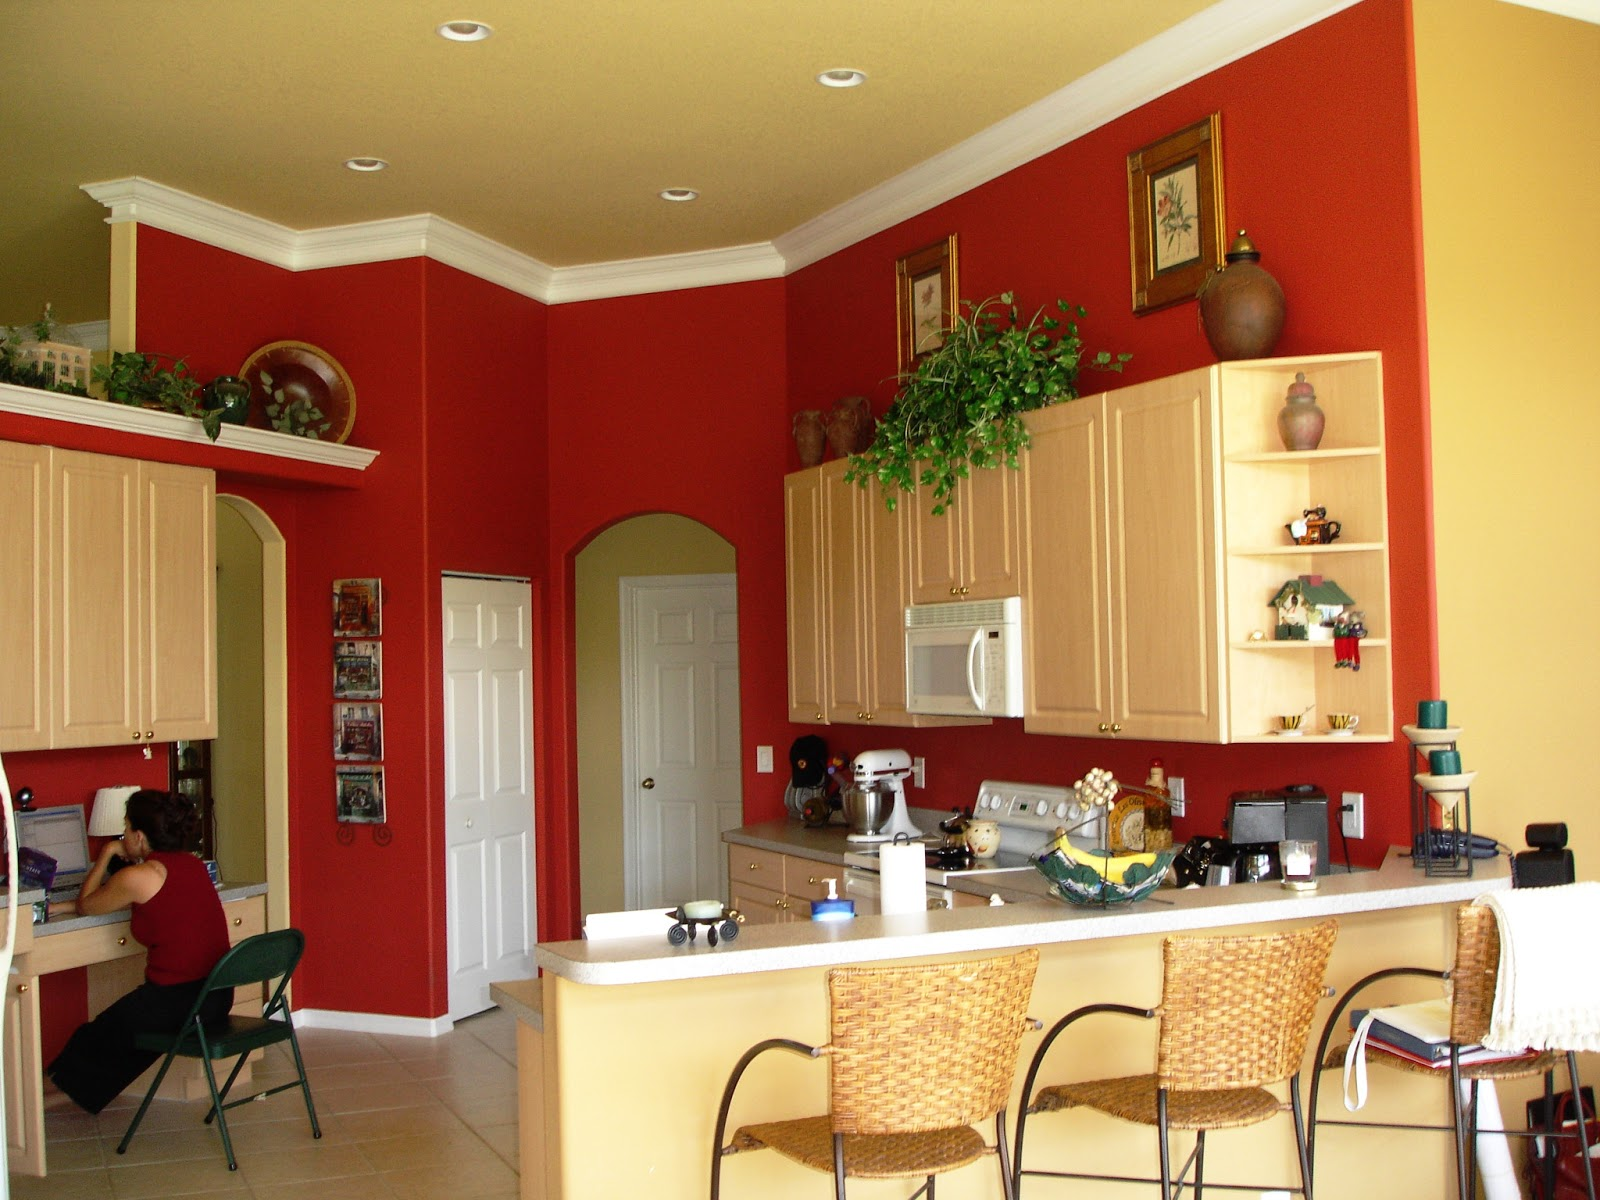 color in restaurants,dining rooms and kitchens If you ask me, red